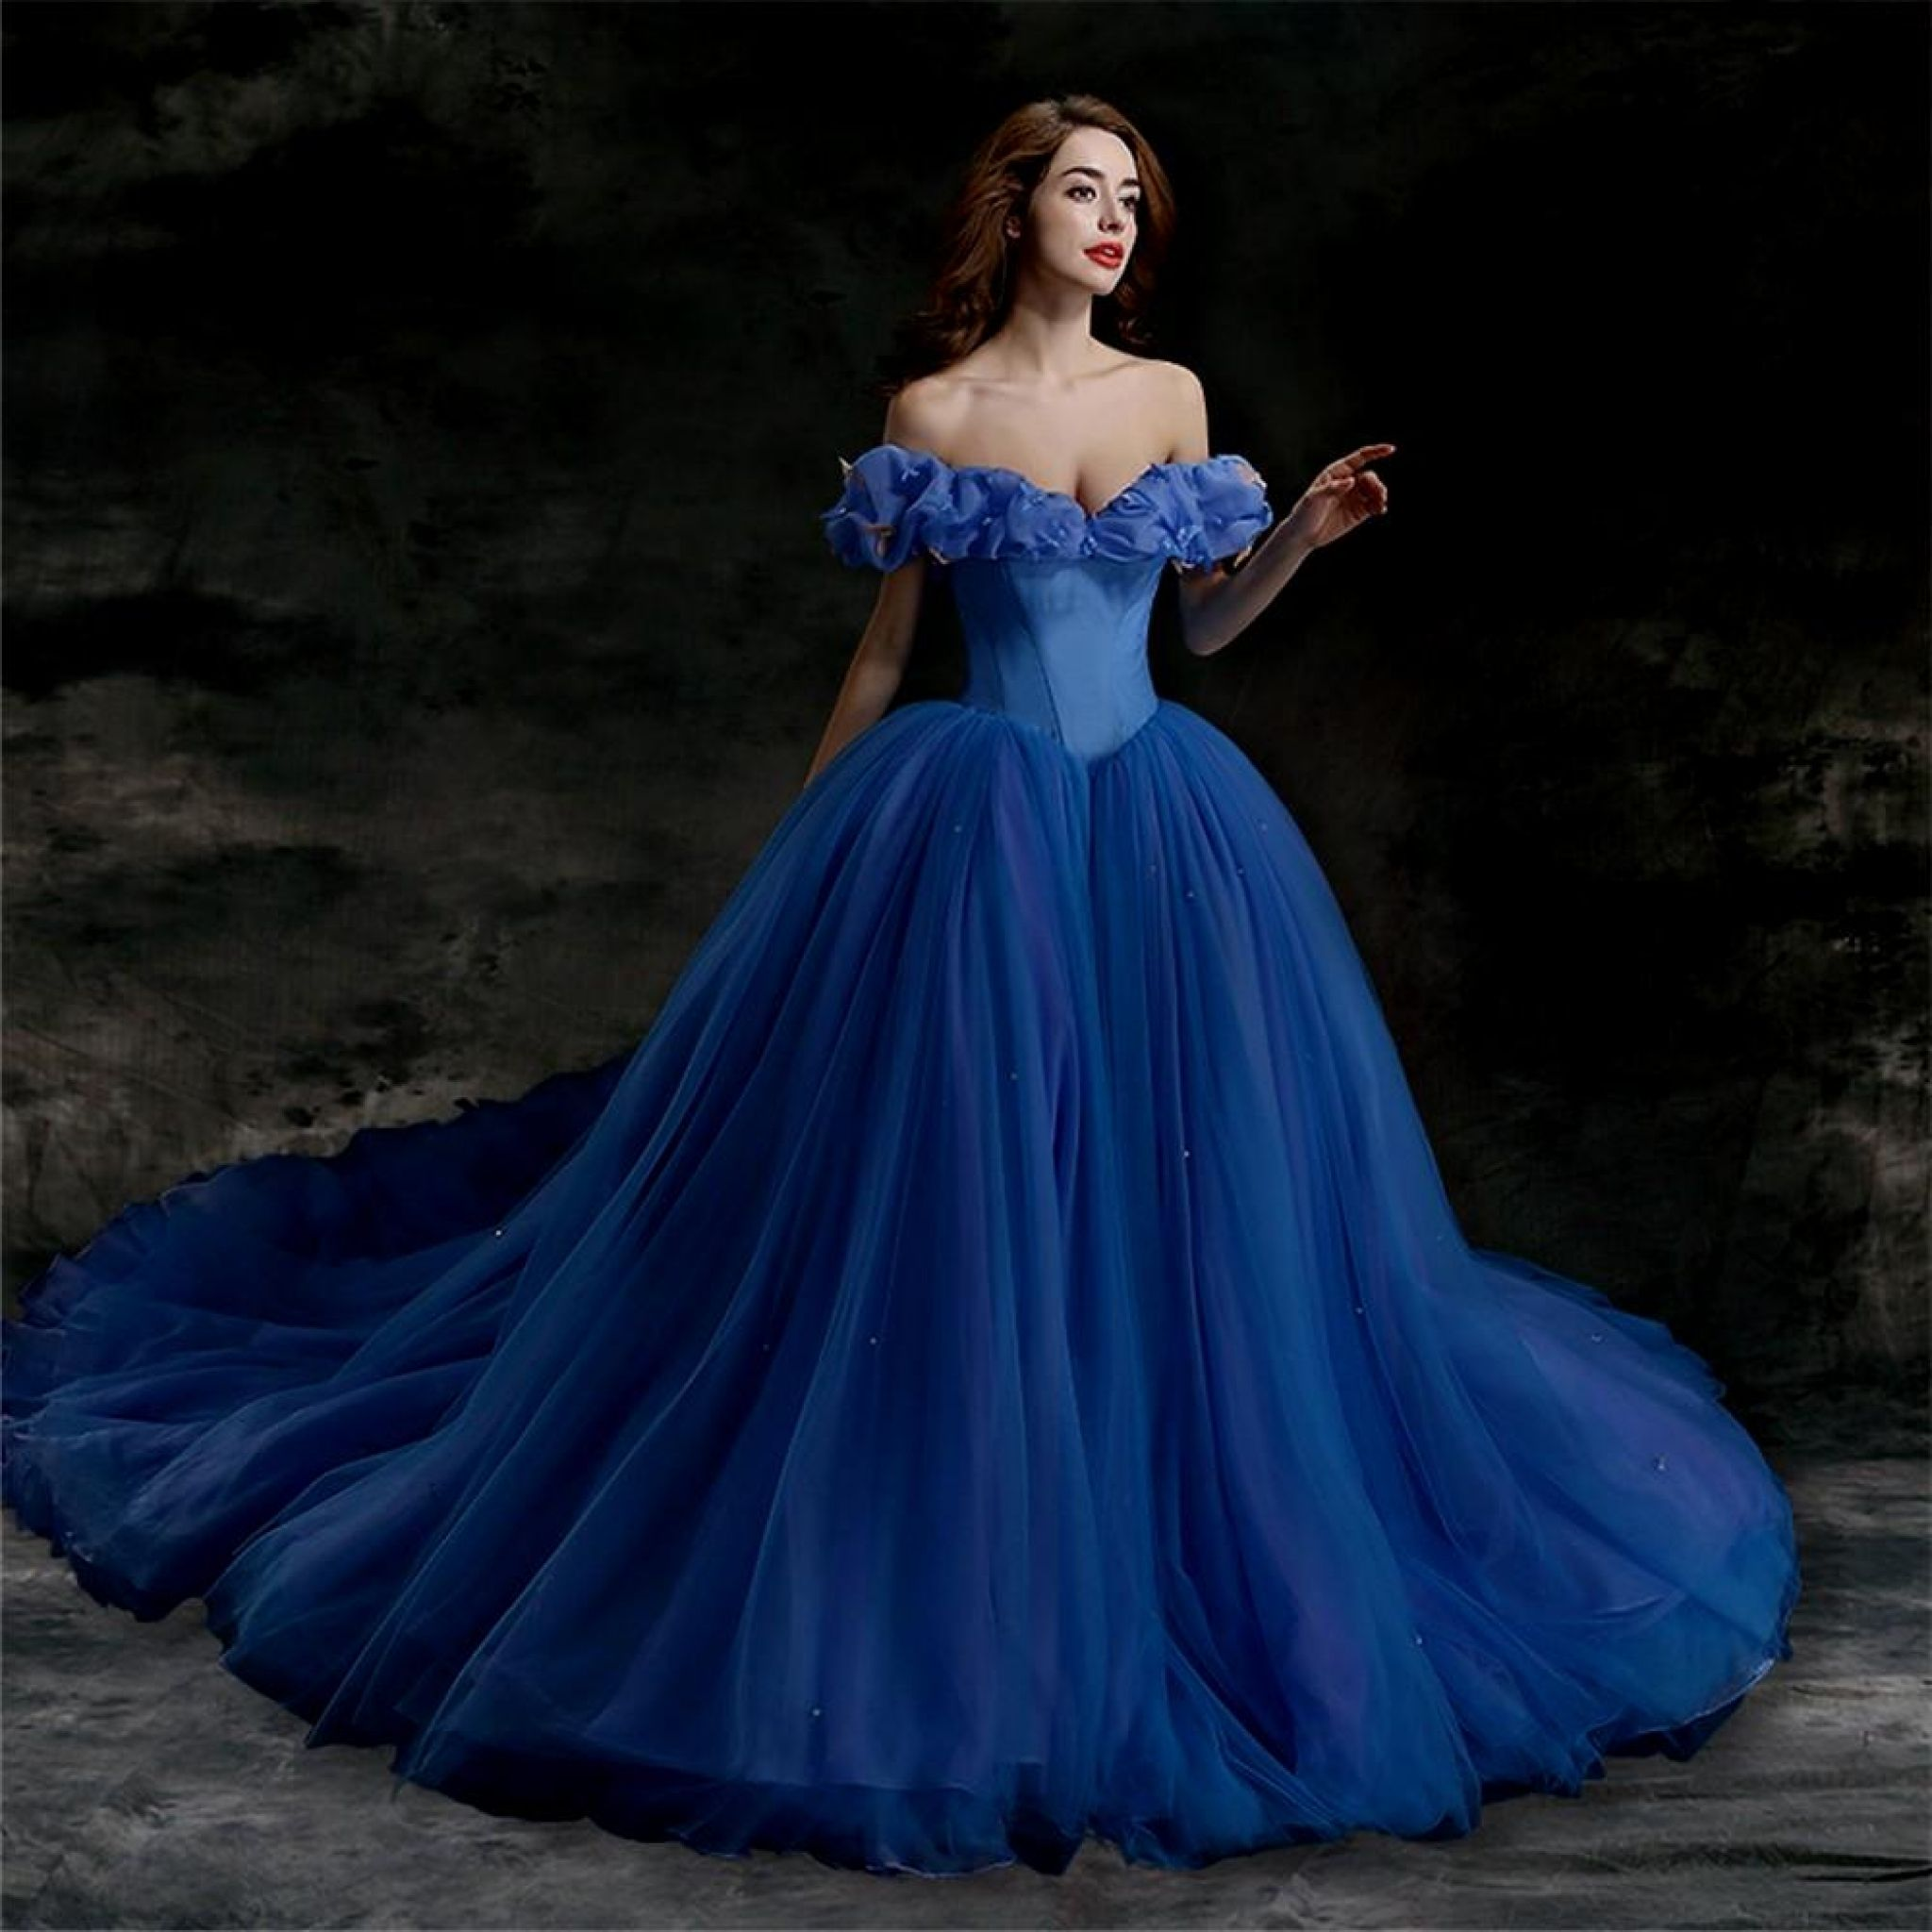 Royal Blue Dresses For Wedding Wedding Dresses For Guests Check More At Http Popular Wedding Dresses Princess Style Wedding Dresses Blue Wedding Dress Royal [ 2048 x 2048 Pixel ]